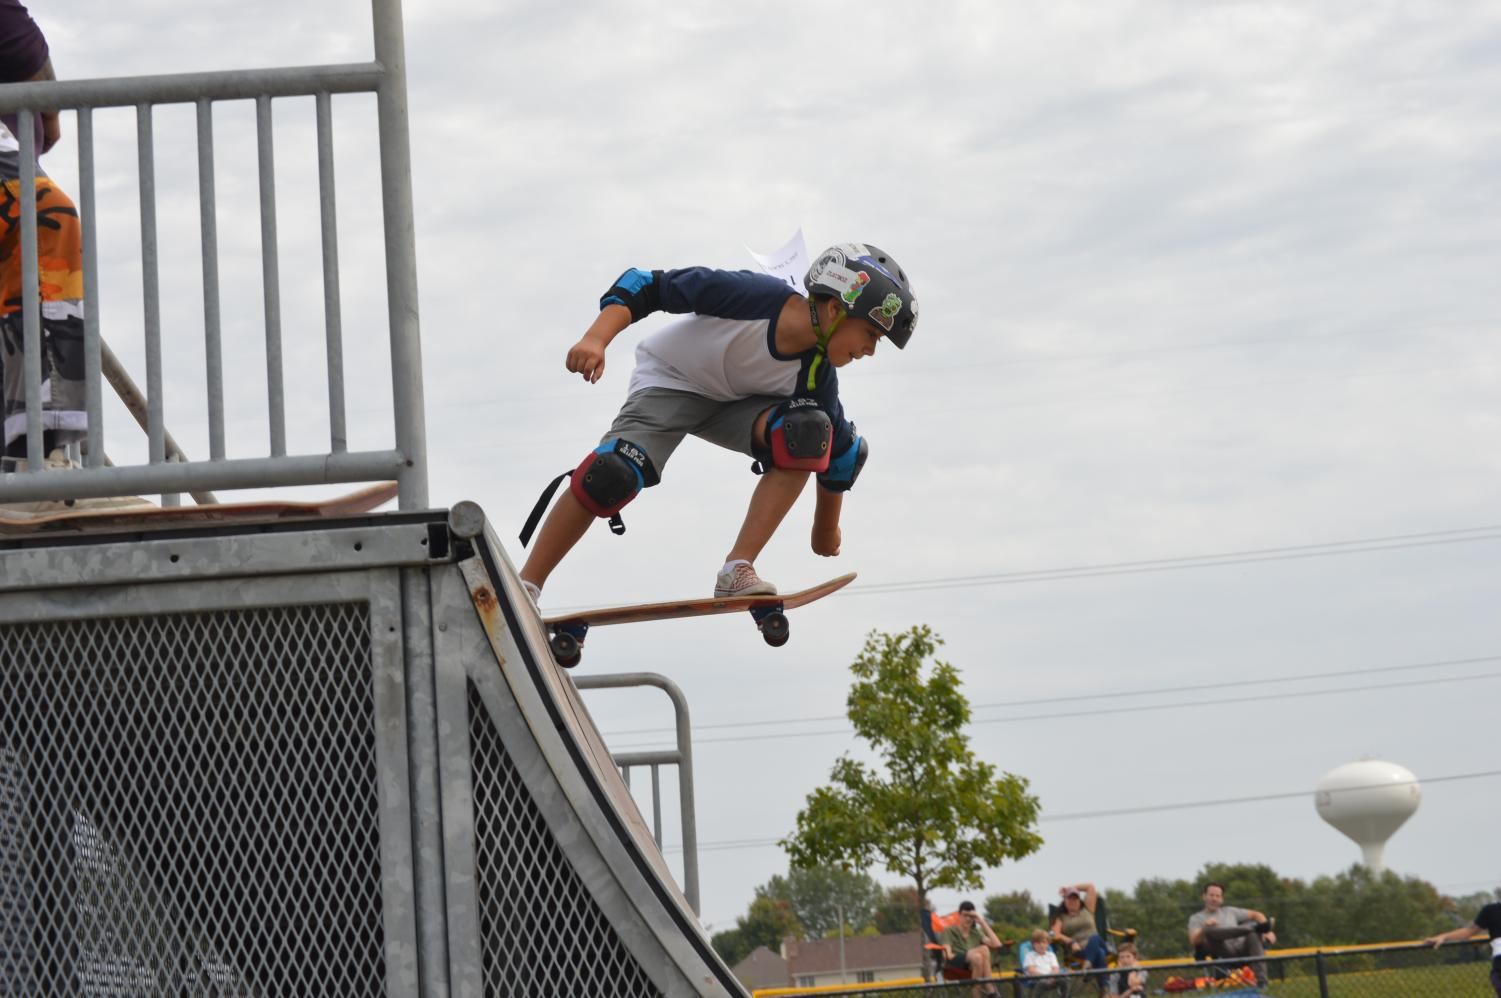 A young skateboard enthusiast displays his skills at a contest held at Bott Community Park and hosted by Jerics Skateshop